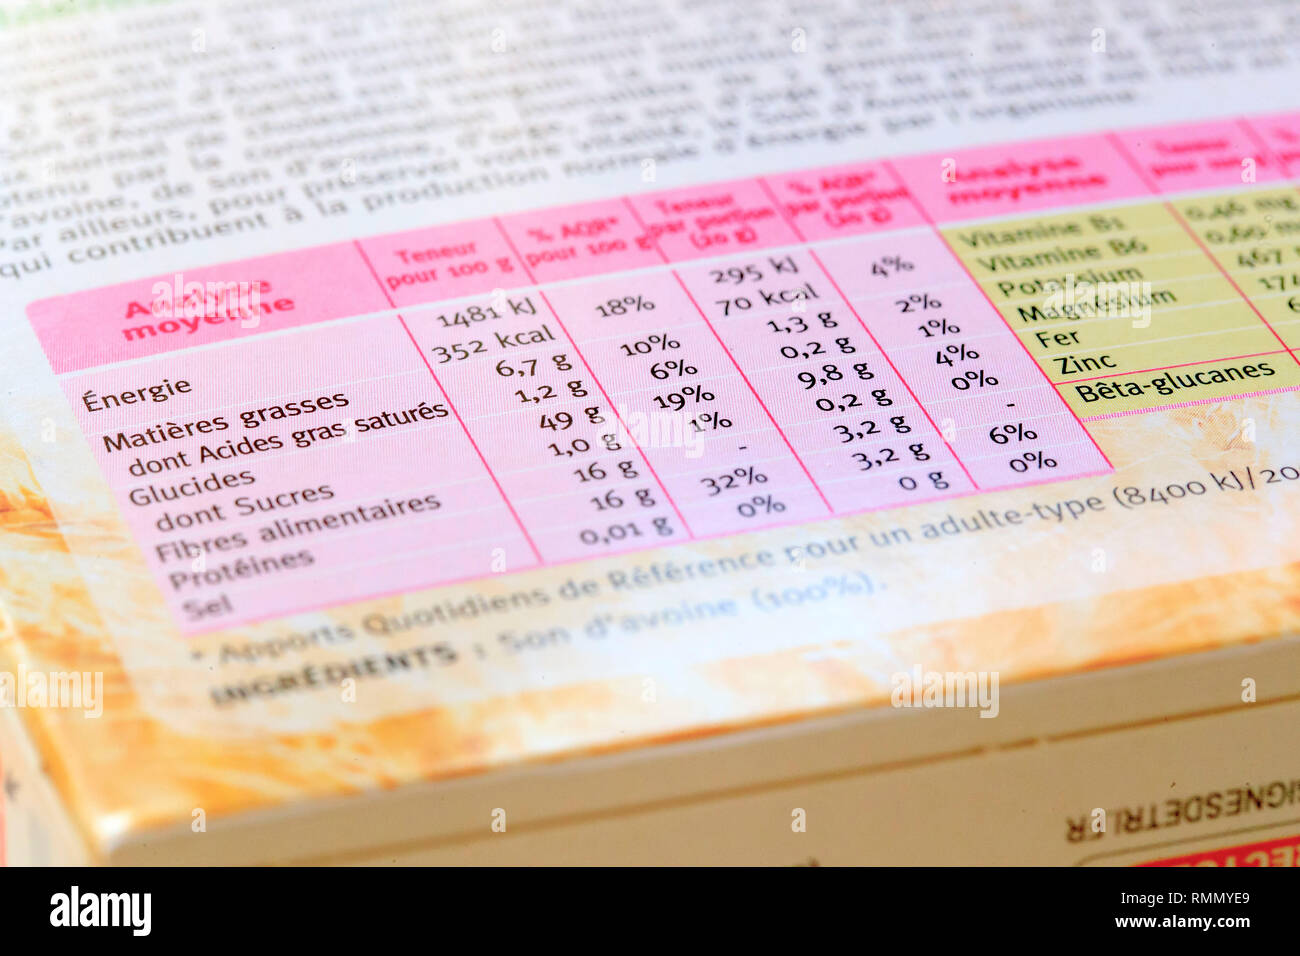 Nutritional values on an oat bran packet. Nutritional labelling - Stock Image